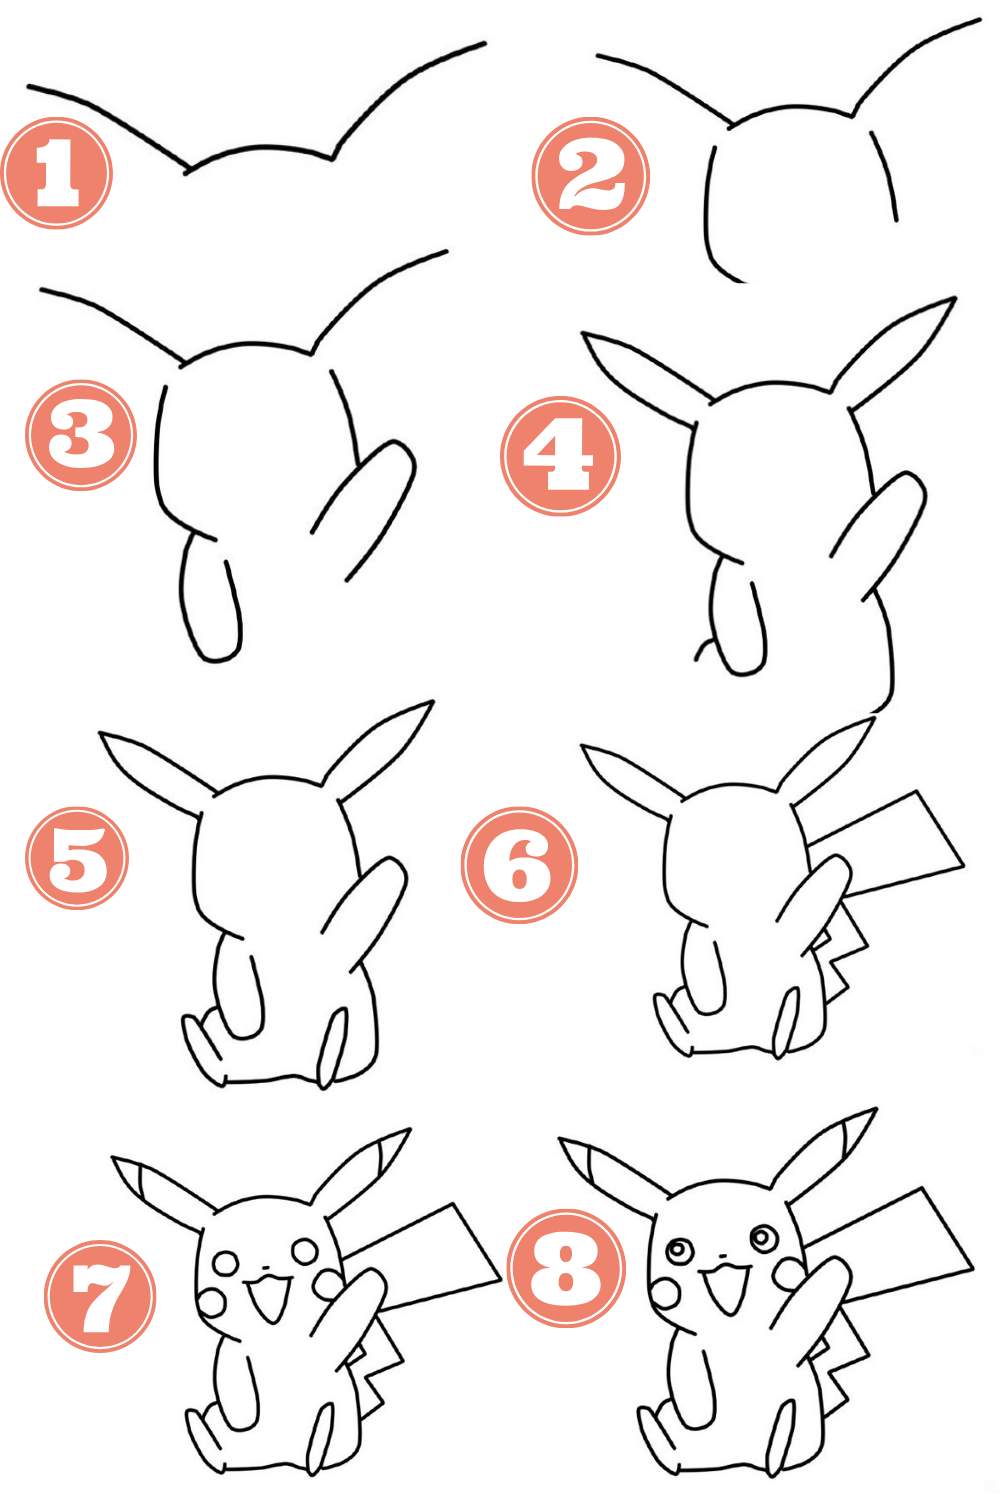 How To Draw Chibi Pikachu Step By Step Easy Doodles Drawings Cute Easy Drawings Easy Drawings